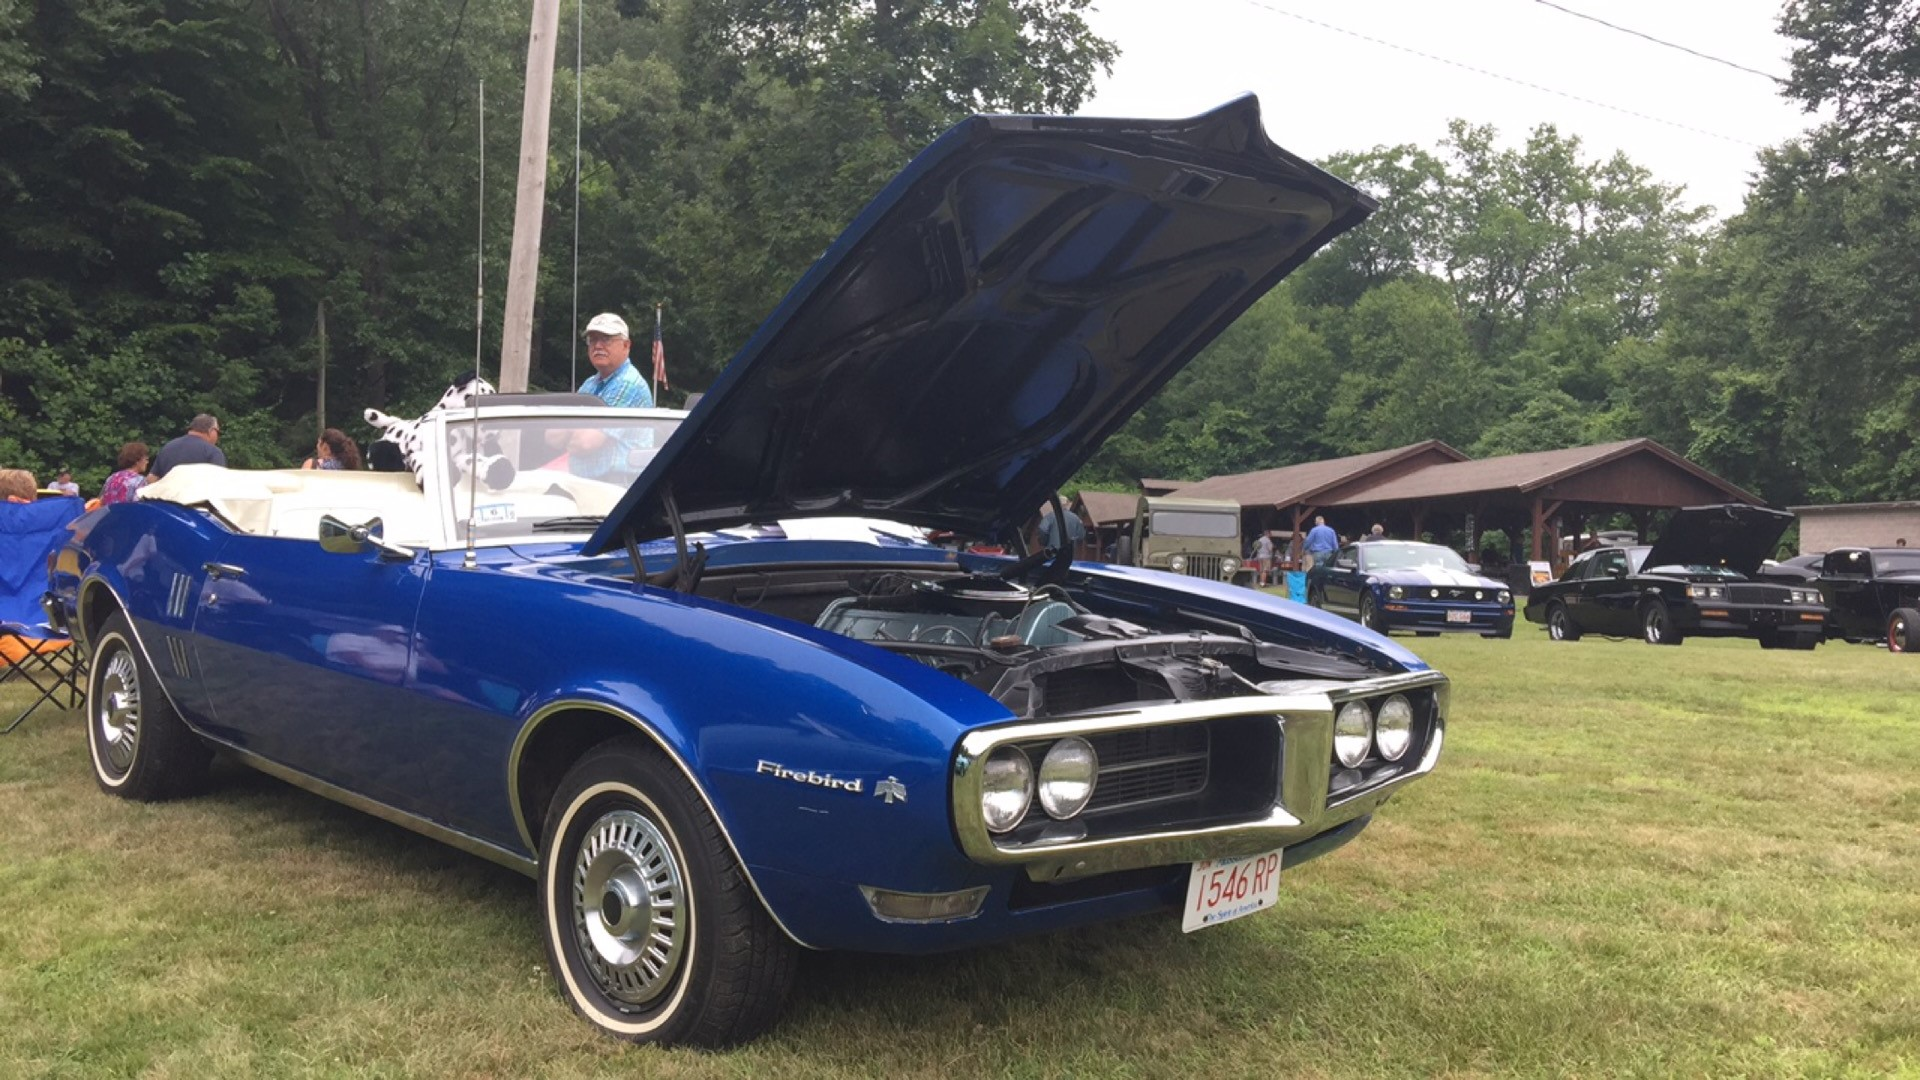 Hot Rods for Heroes 2015 │ Gallery - Bertera Auto Group Blogs